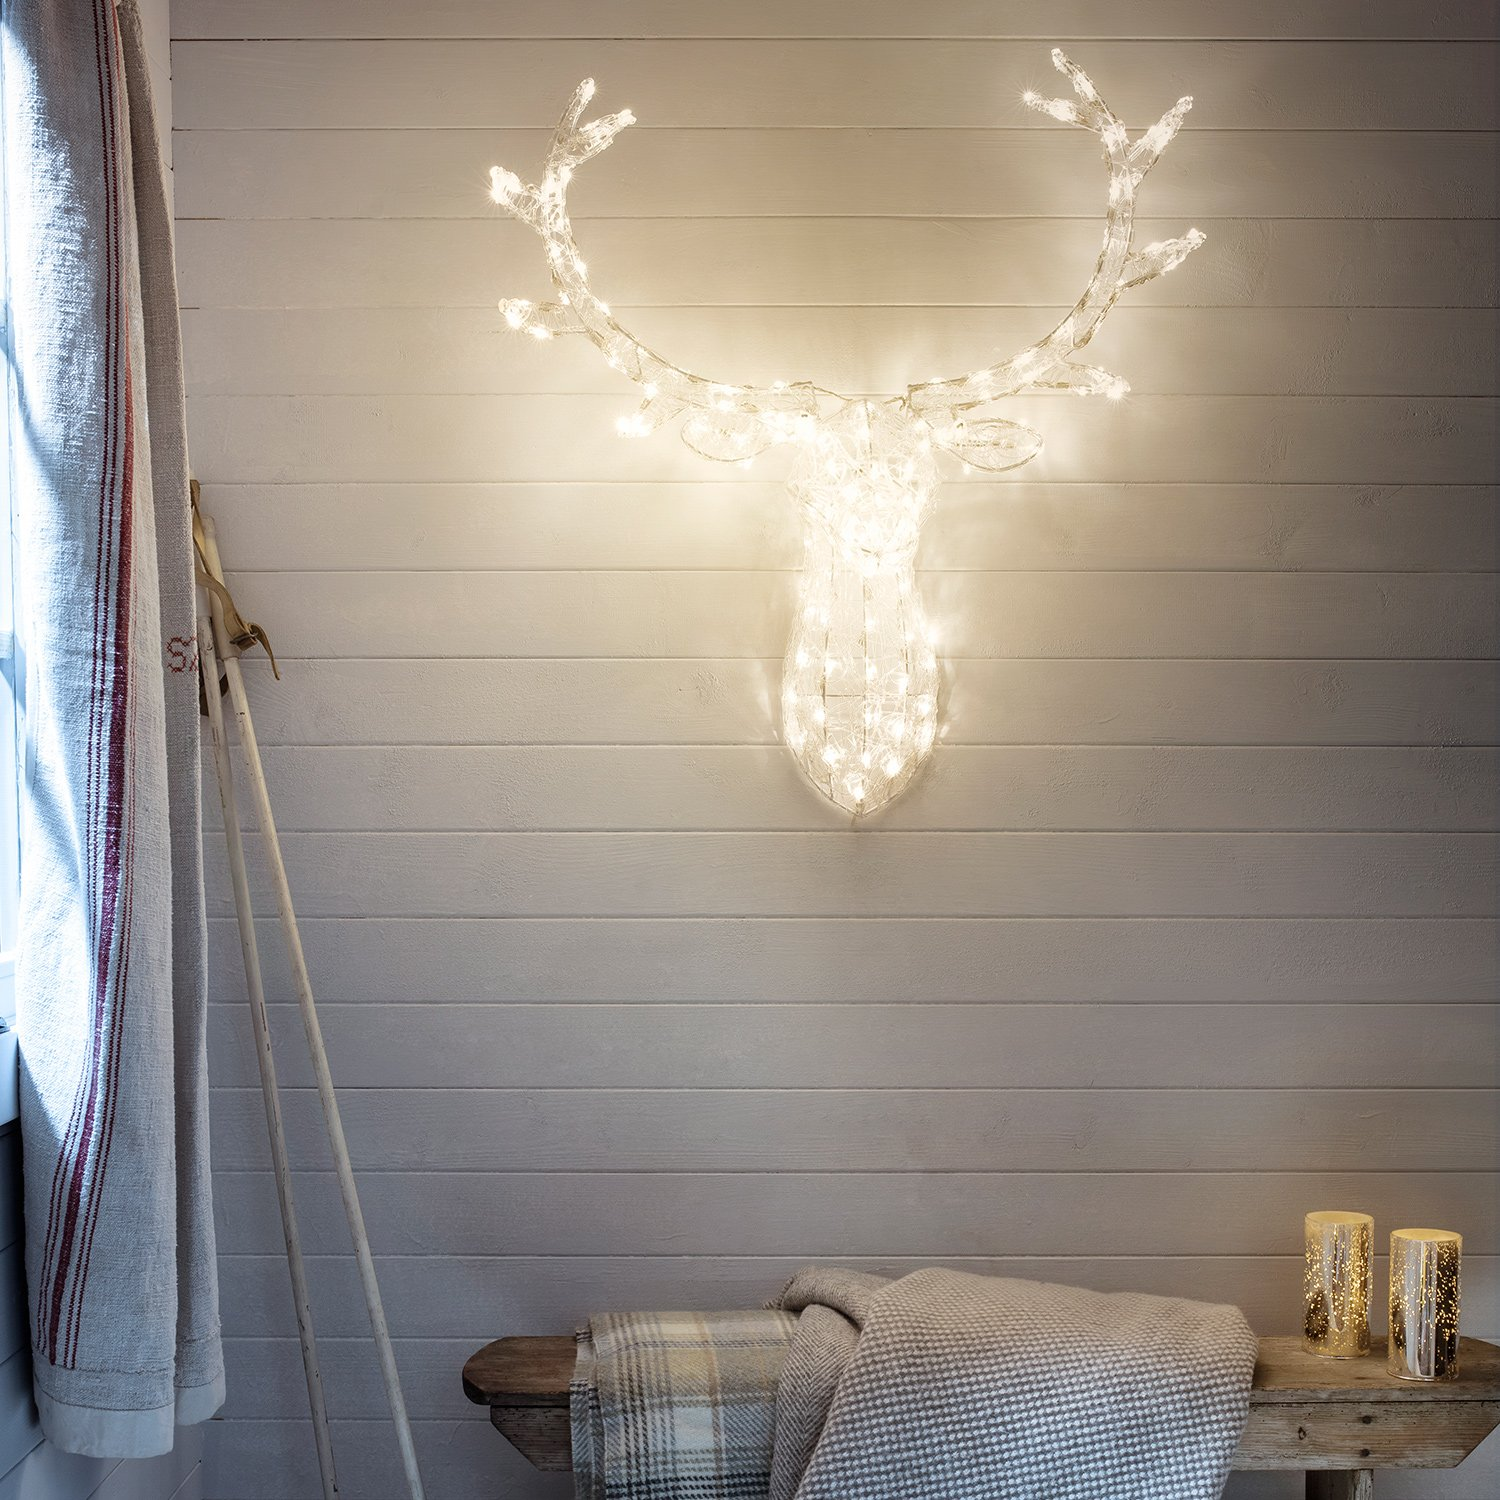 Amazon stag head christmas light decoration with 140 warm amazon stag head christmas light decoration with 140 warm white leds for indoor and outdoor use garden outdoor mozeypictures Gallery